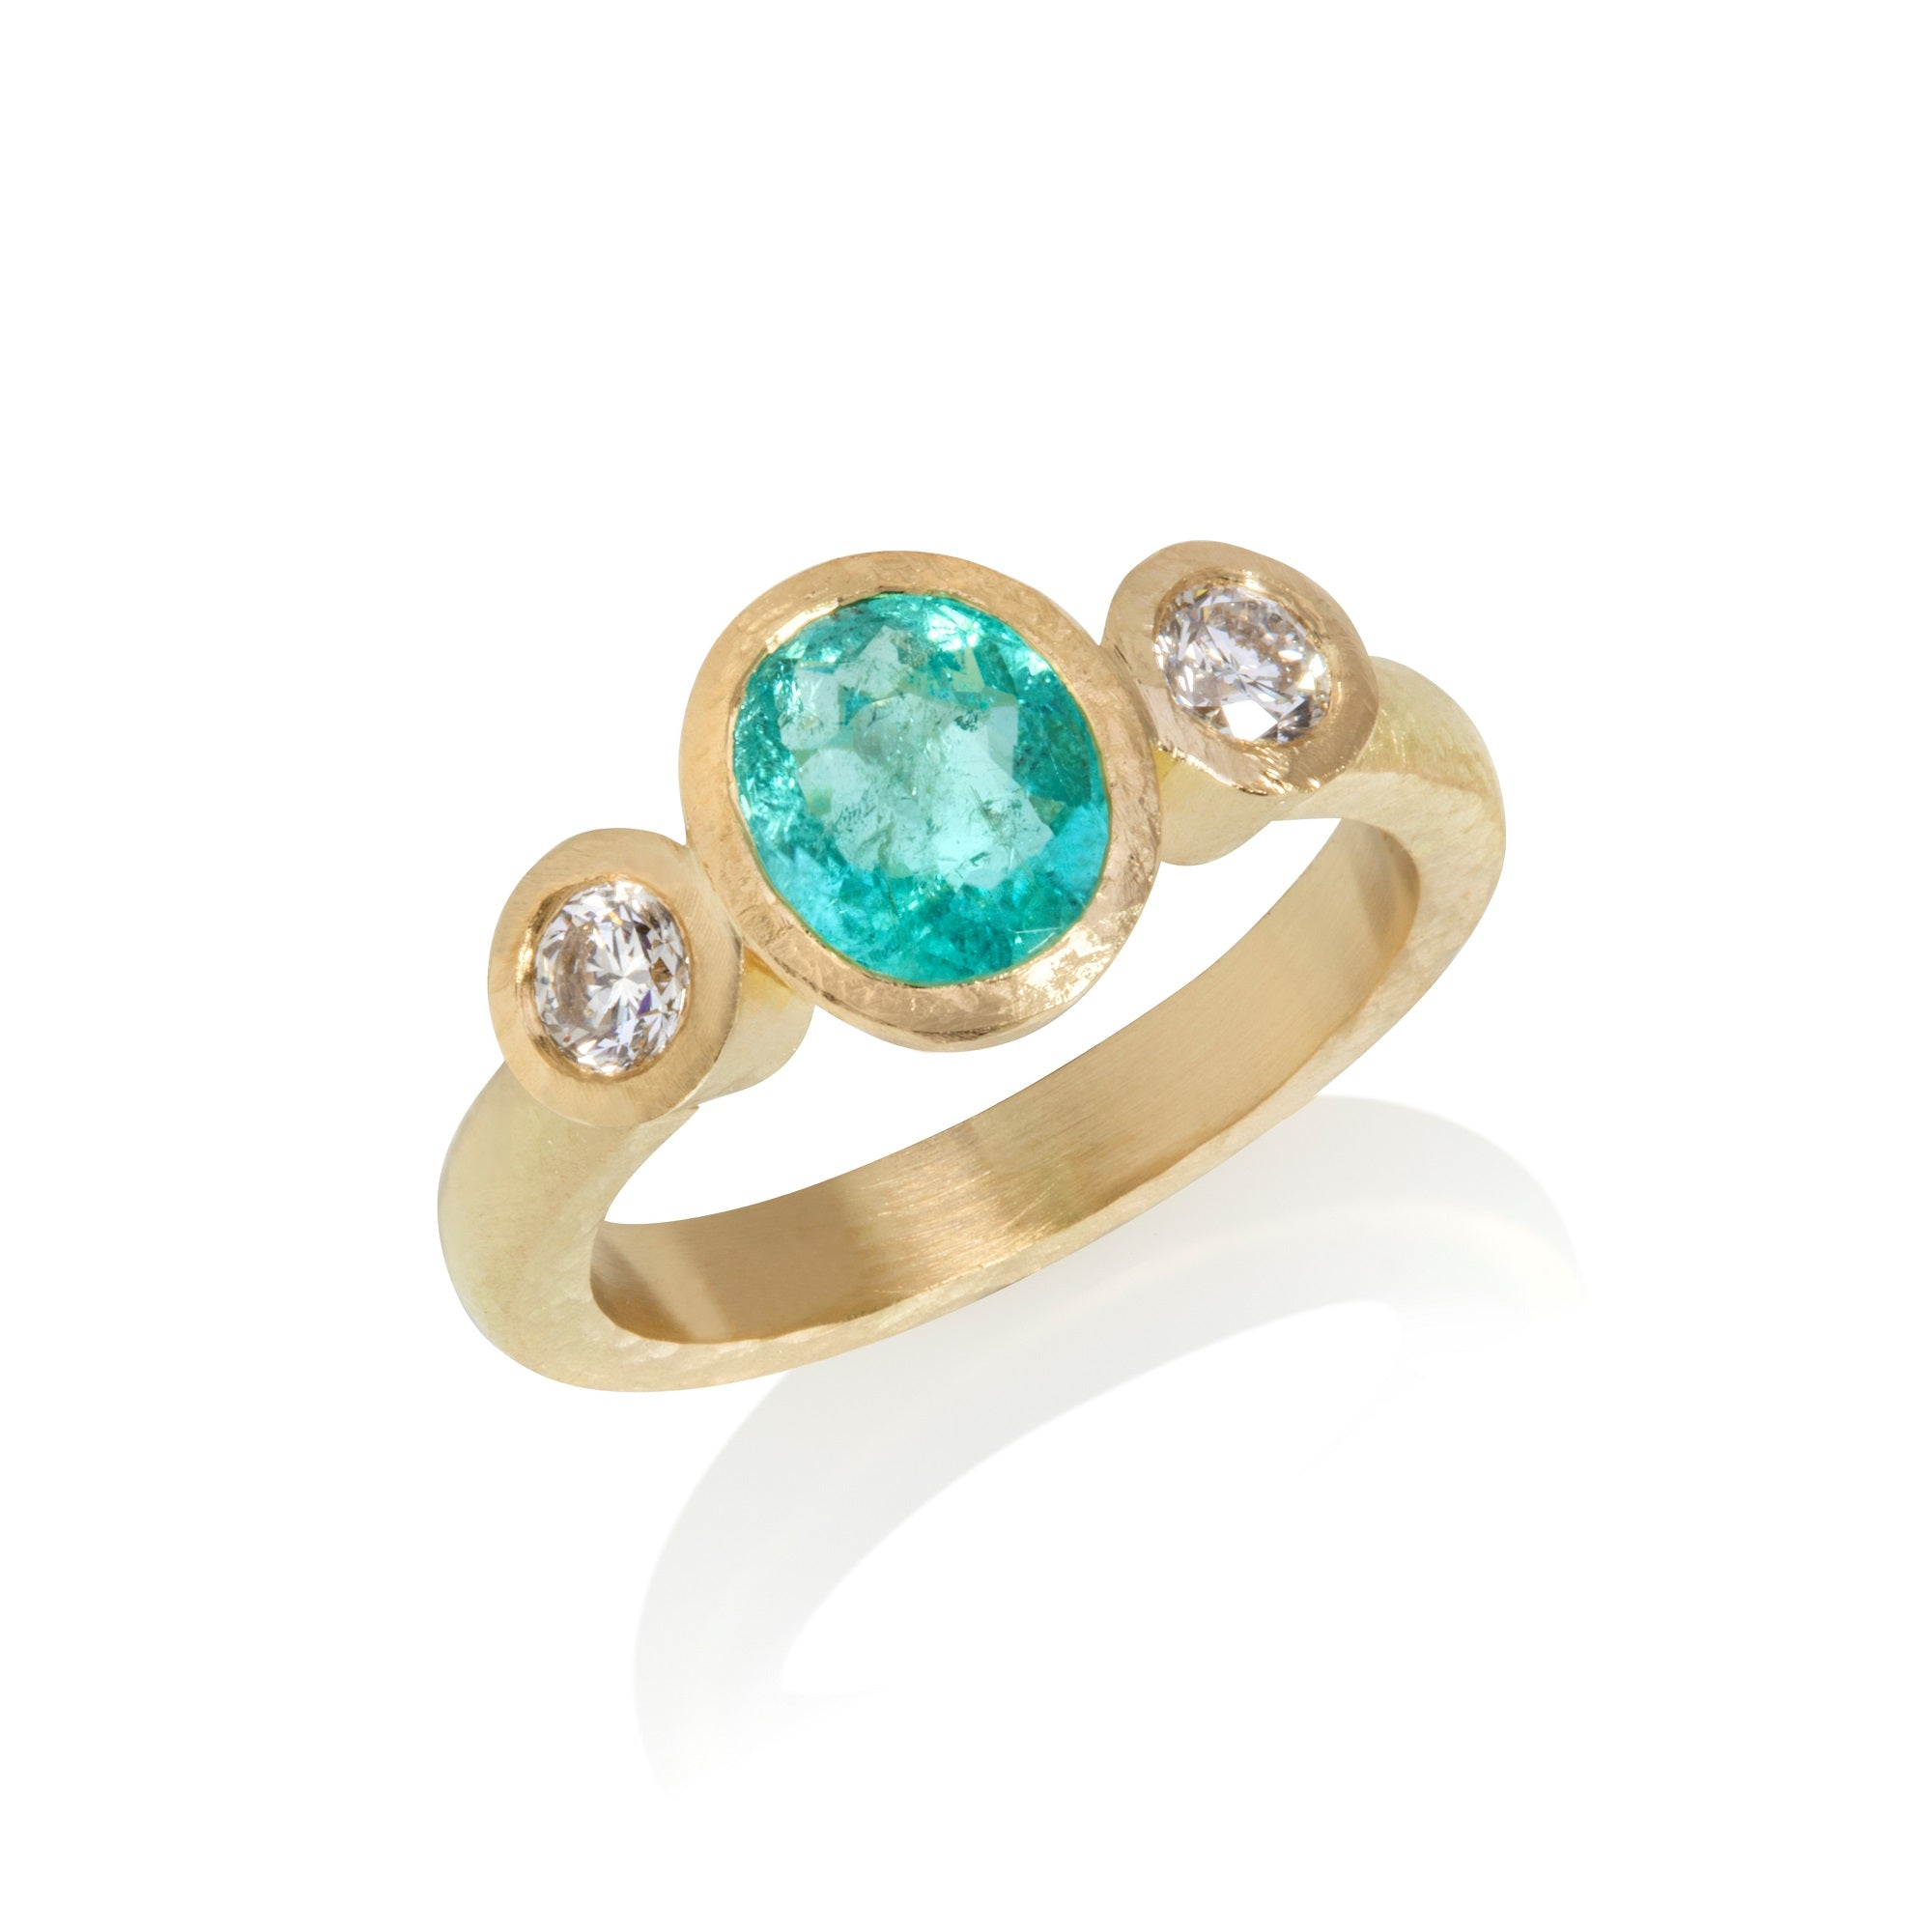 Yellow gold ring with central oval Paraiba tourmaline with round cut diamonds either side